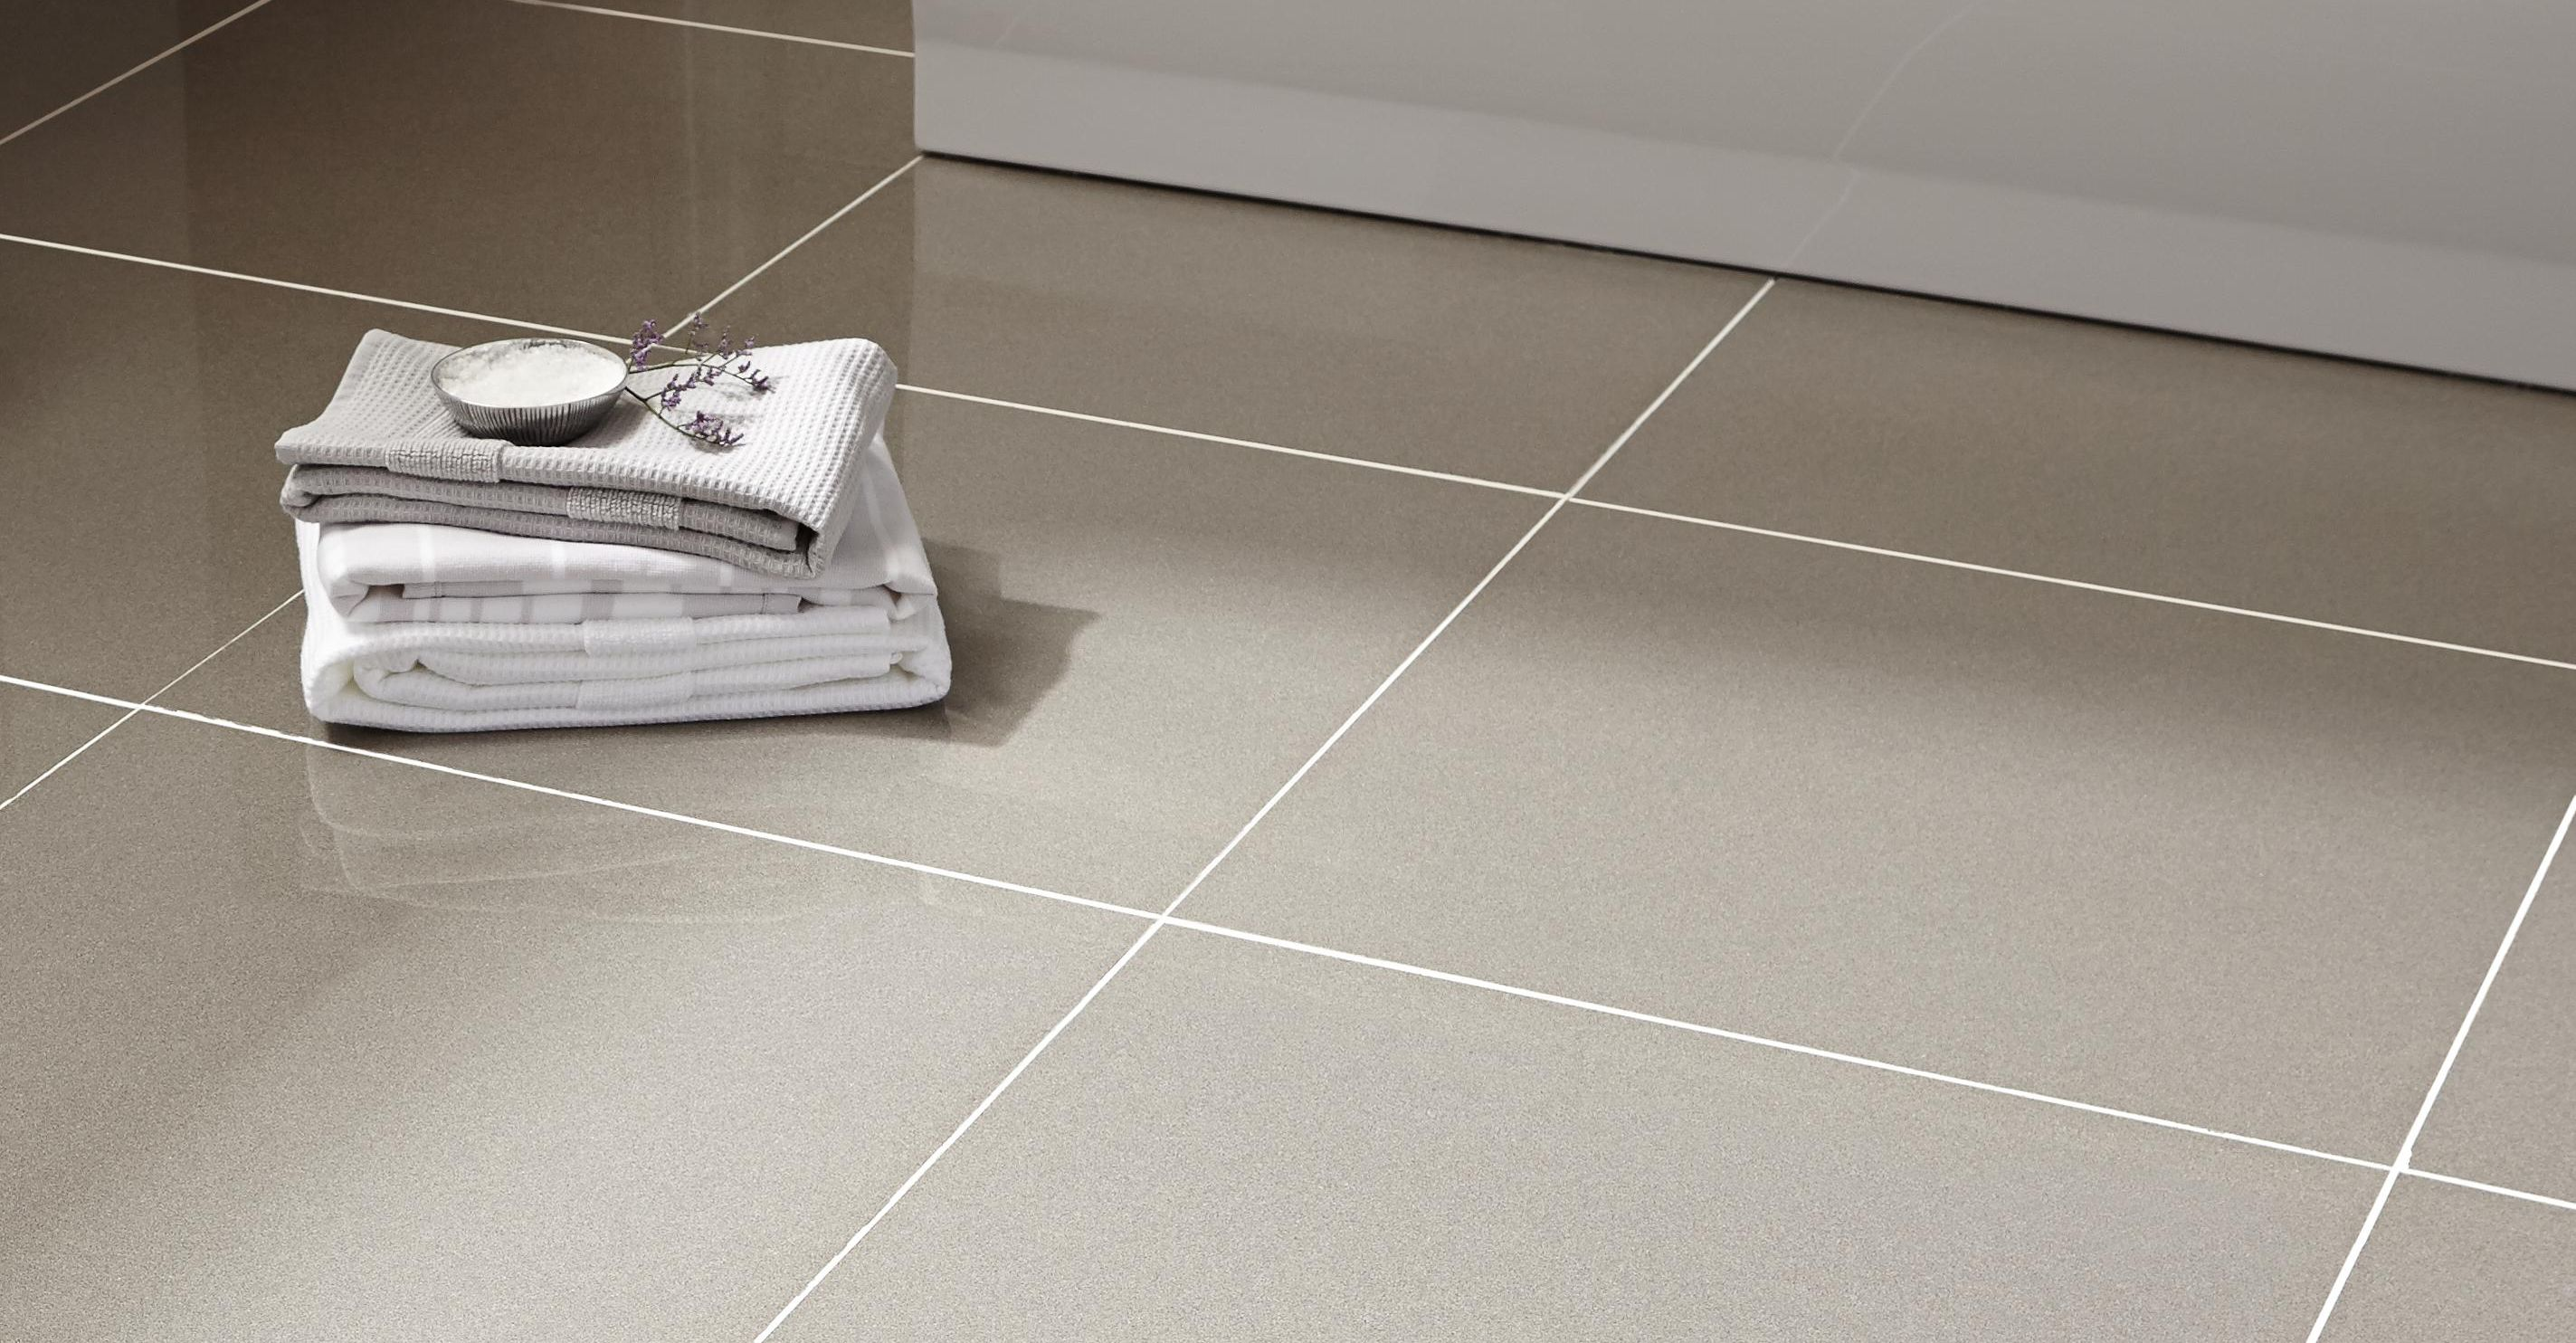 How to lay floor tiles ideas advice diy at bq dailygadgetfo Image collections